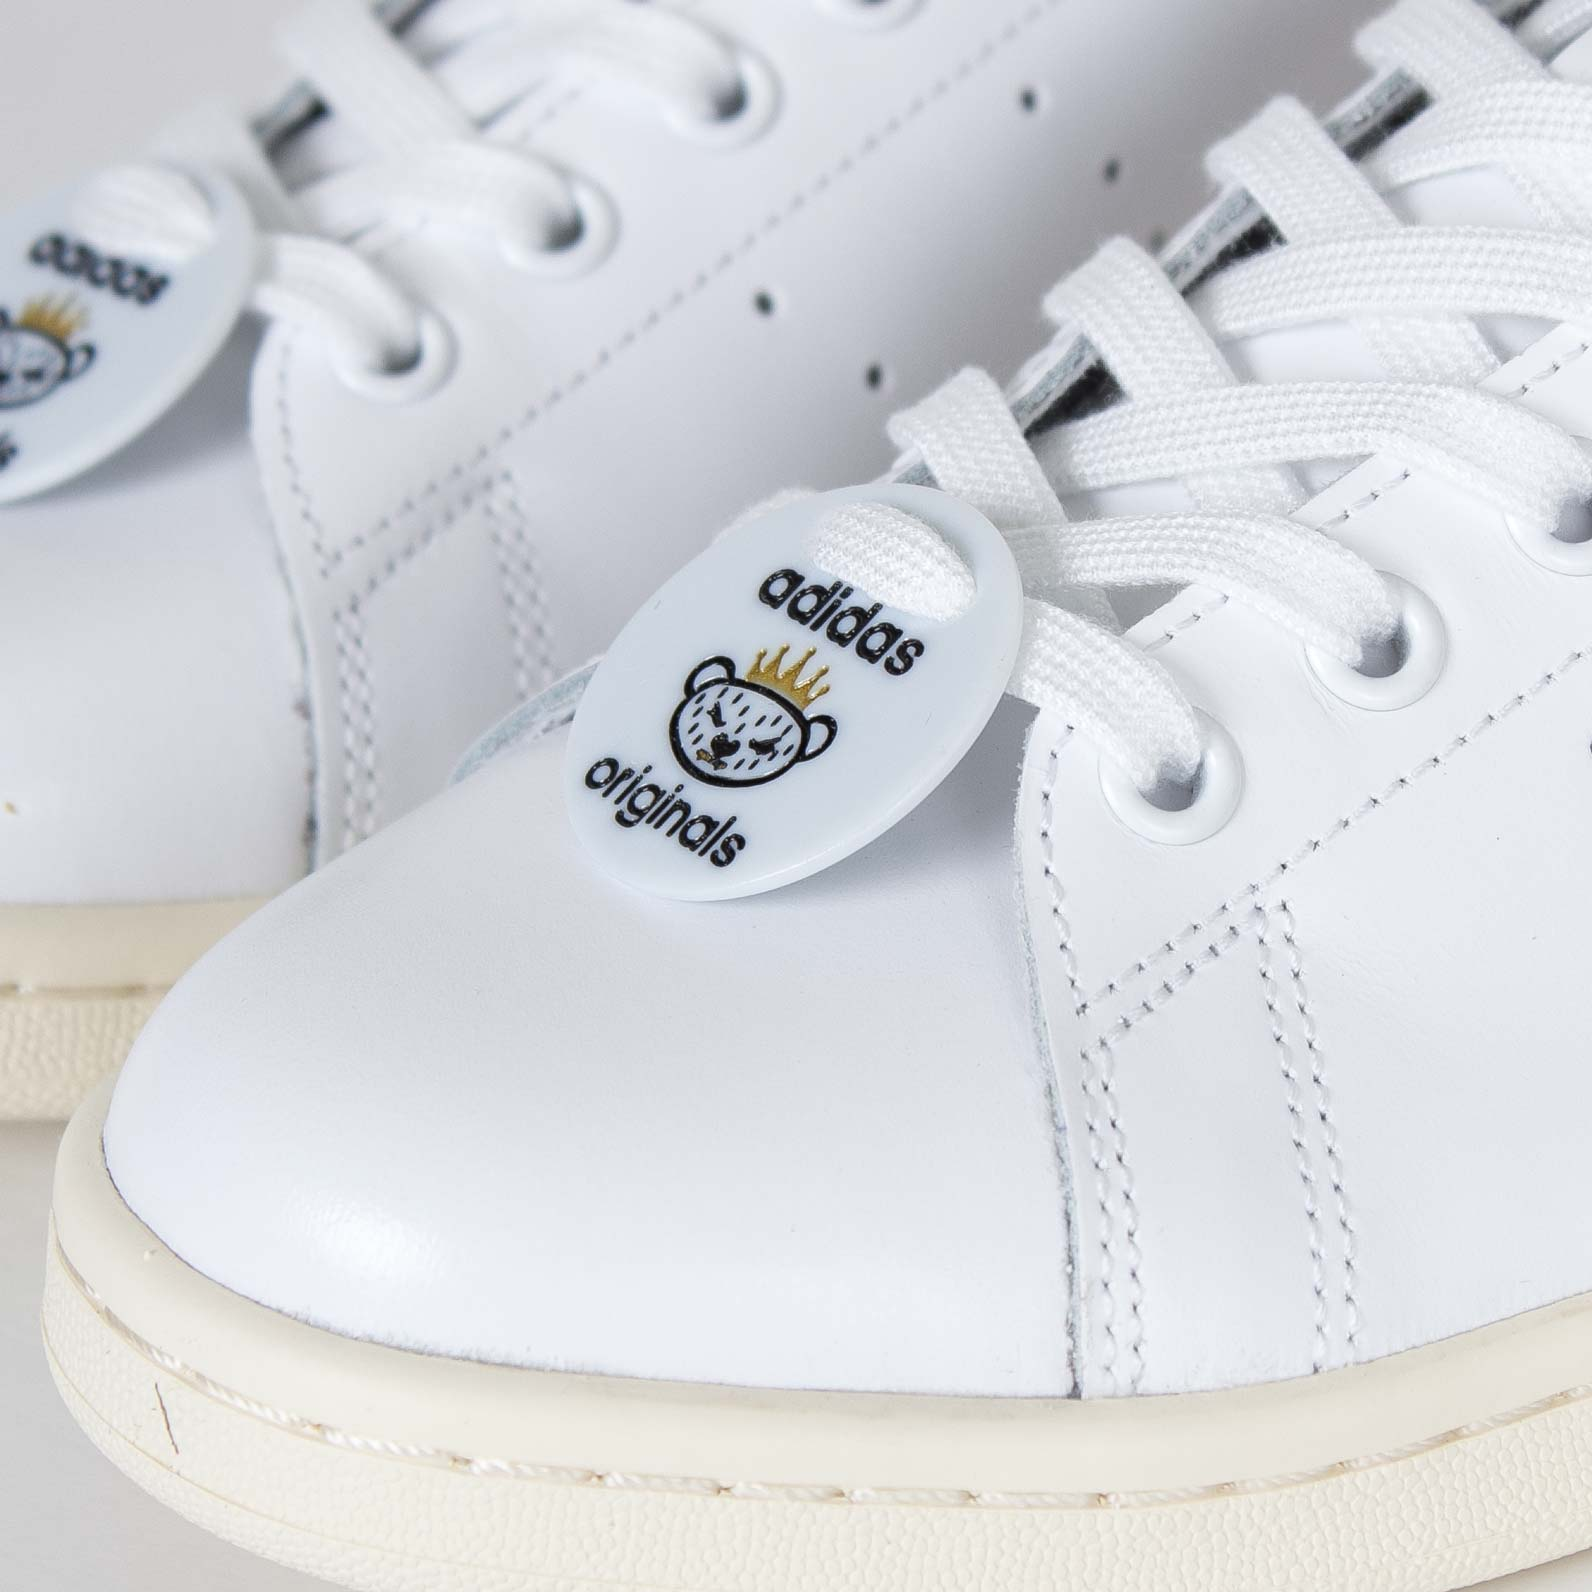 timeless design 49c80 124c1 adidas Stan Smith Nigo - S79591 - Sneakersnstuff | sneakers ...